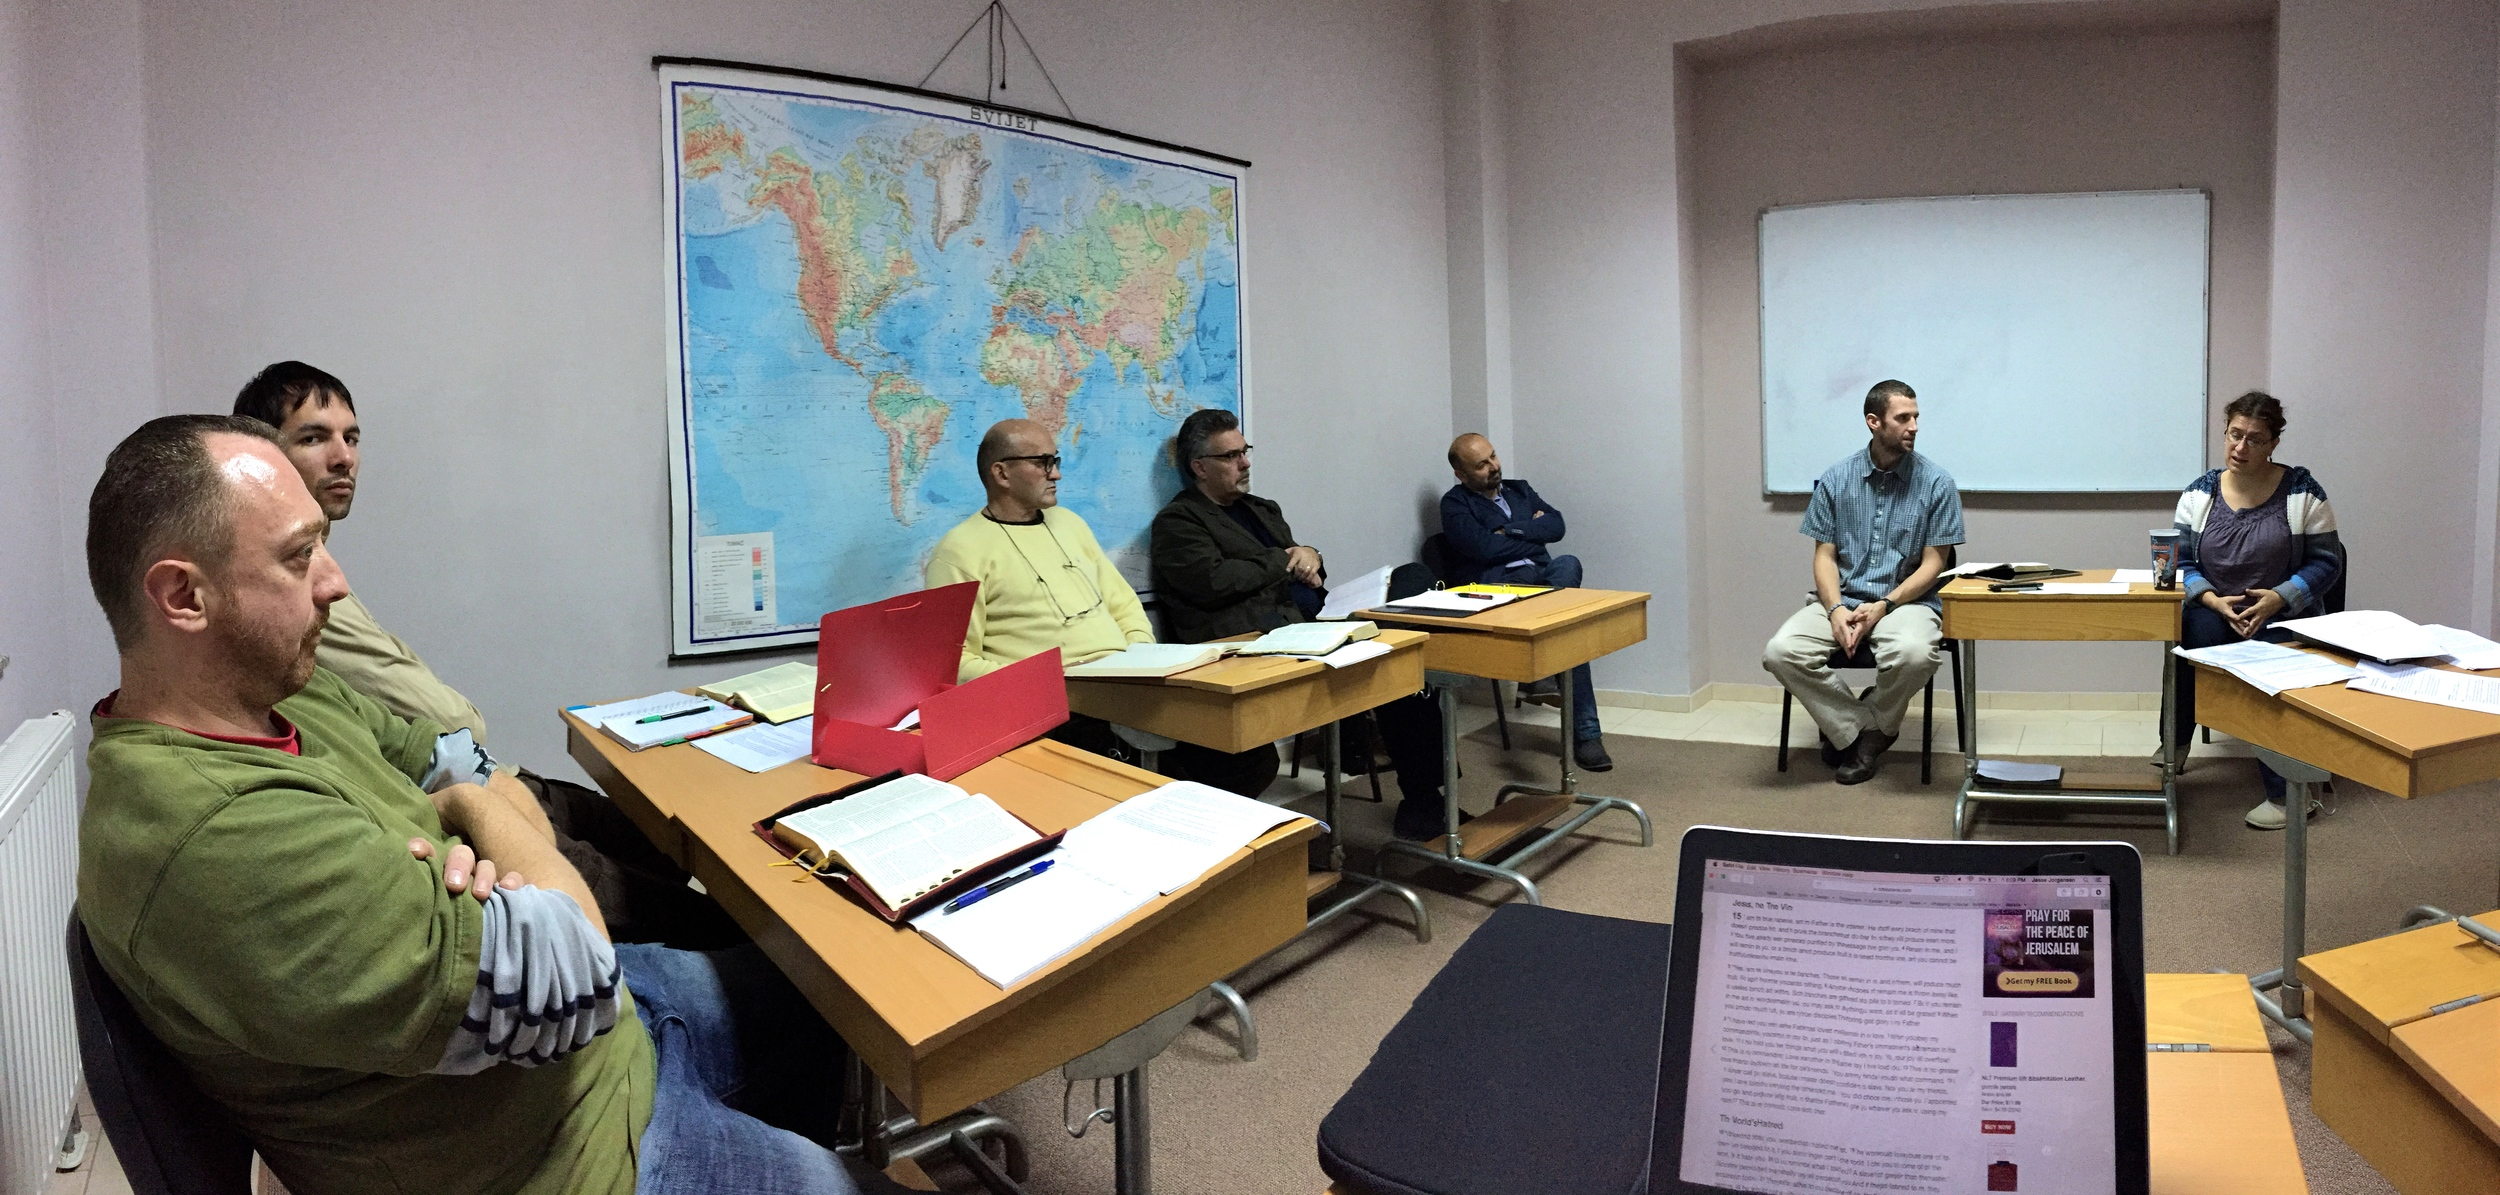 Pastor Nick Teaching at the Bible School in Mostar.